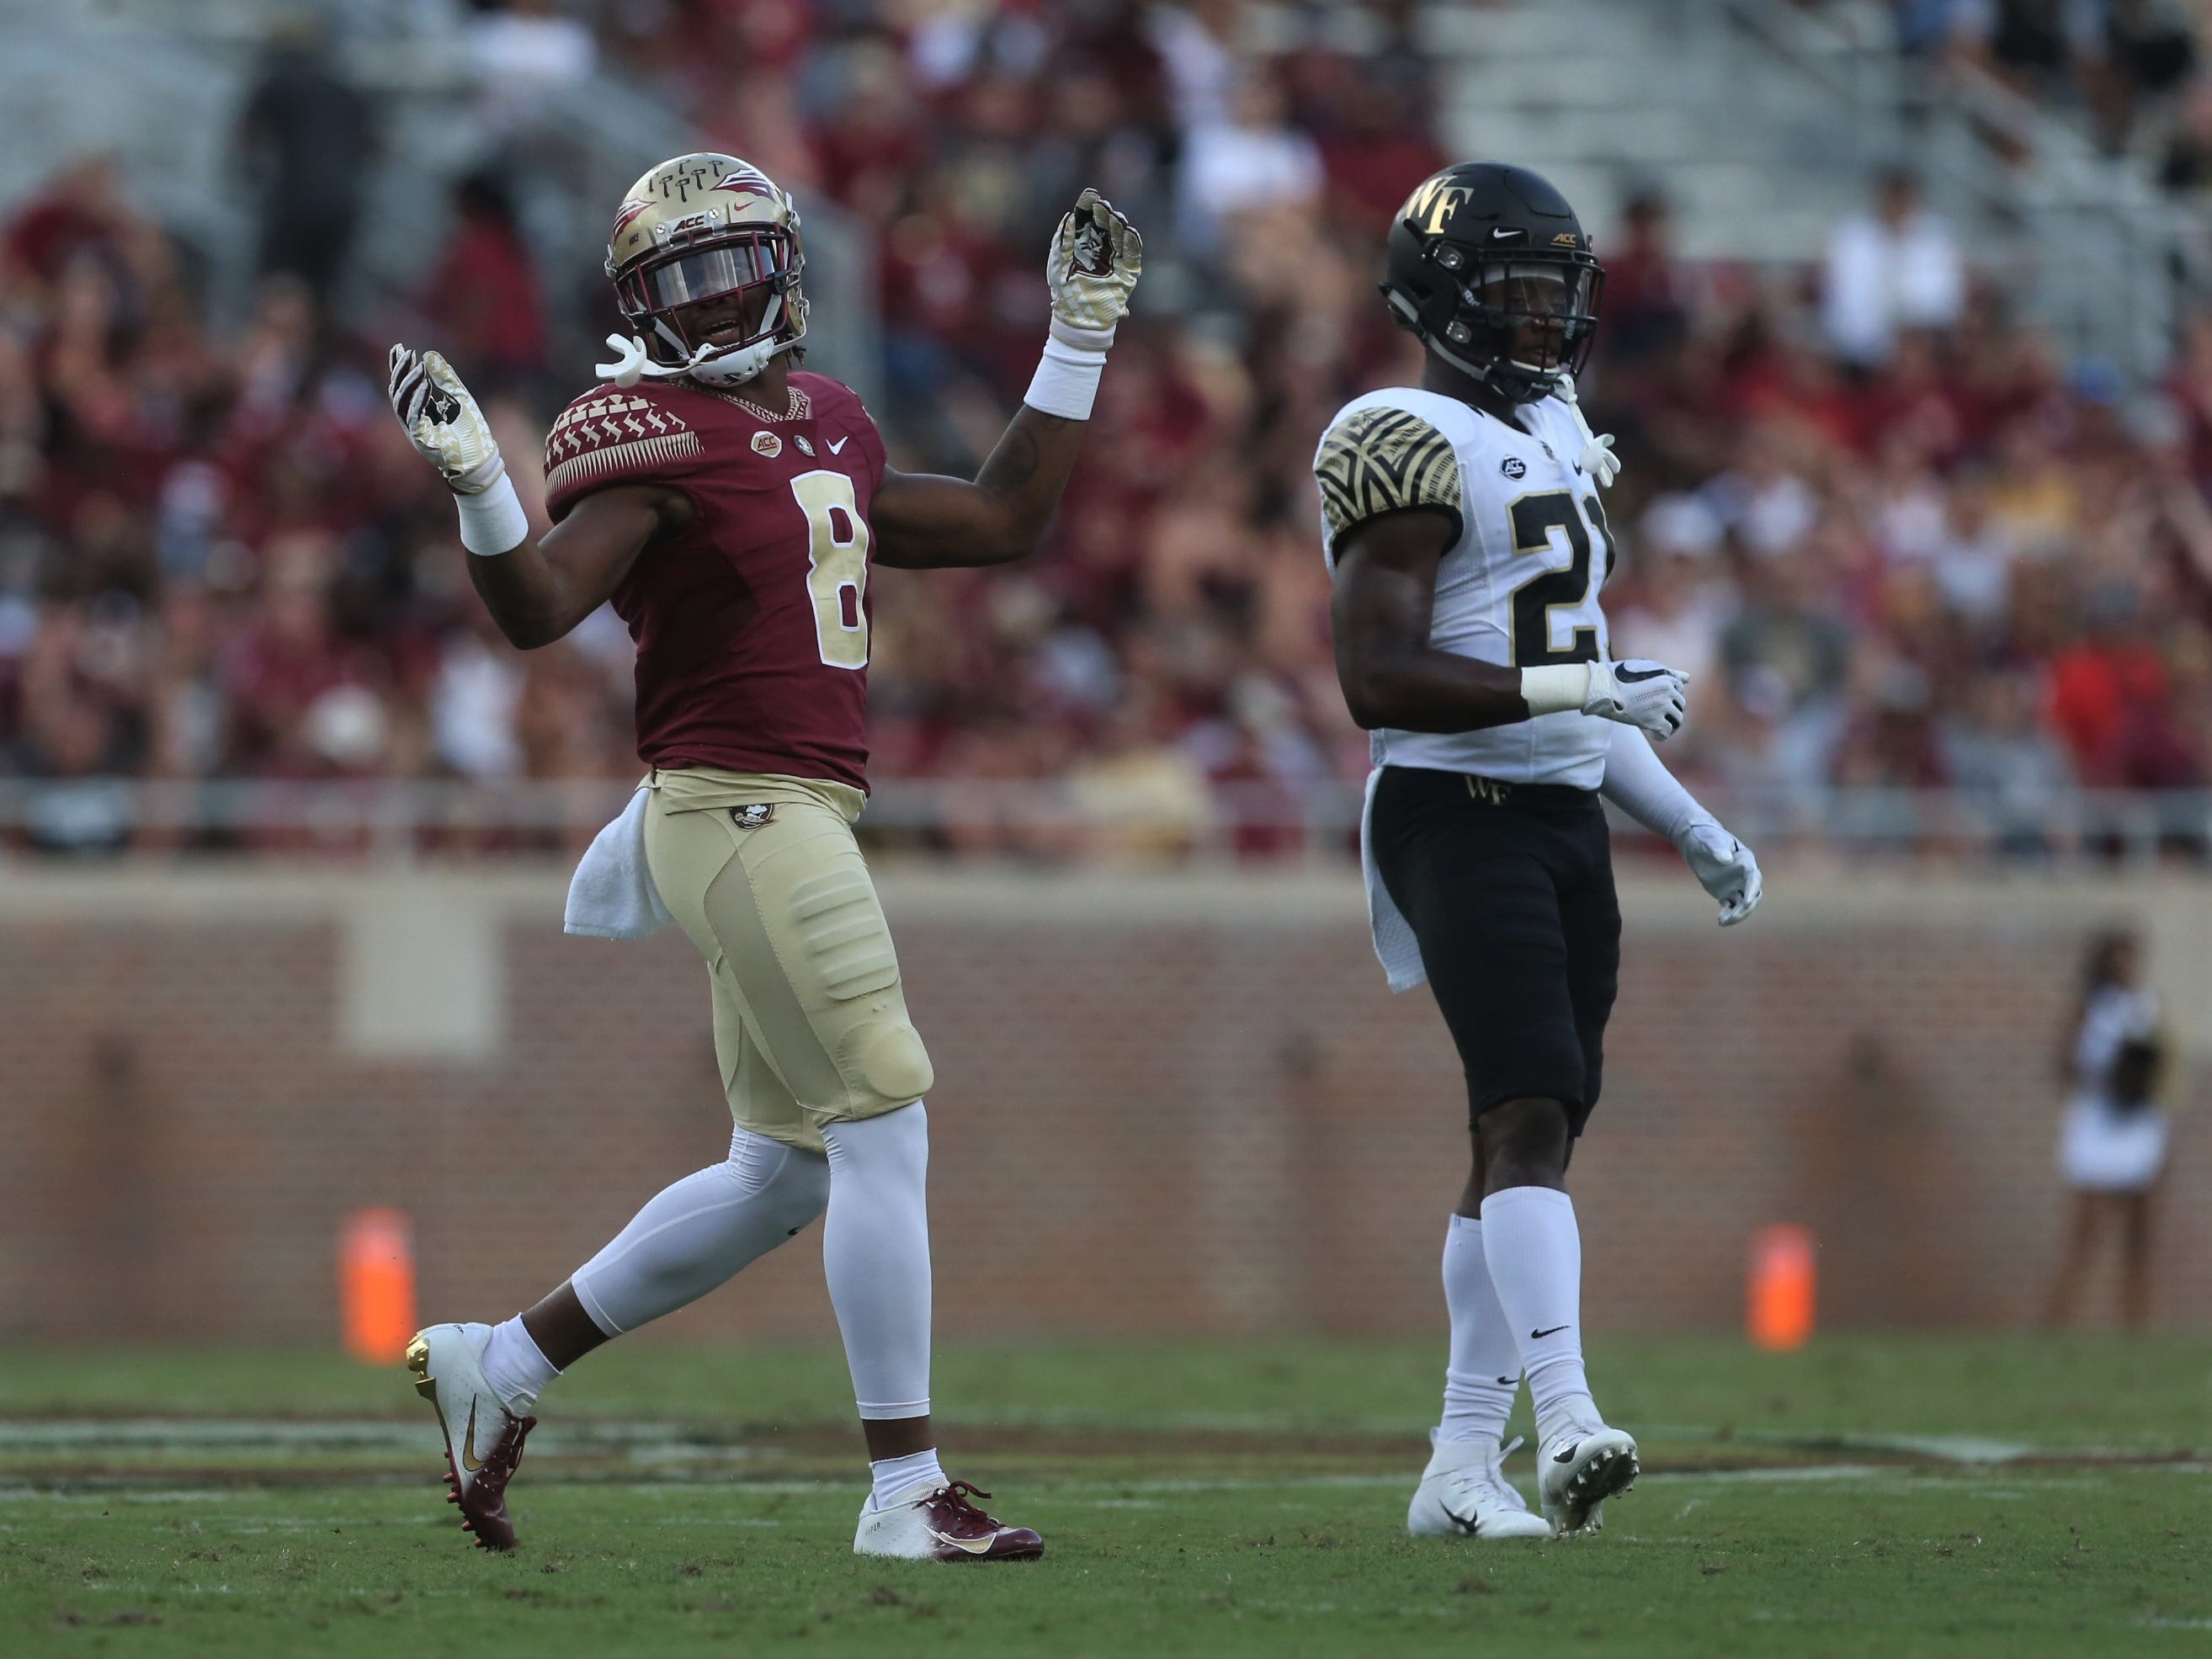 Florida State receiver Nyqwan Murray celebrates a big play against Wake Forest during a game at Doak Campbell Stadium on Saturday, Oct. 20, 2018.